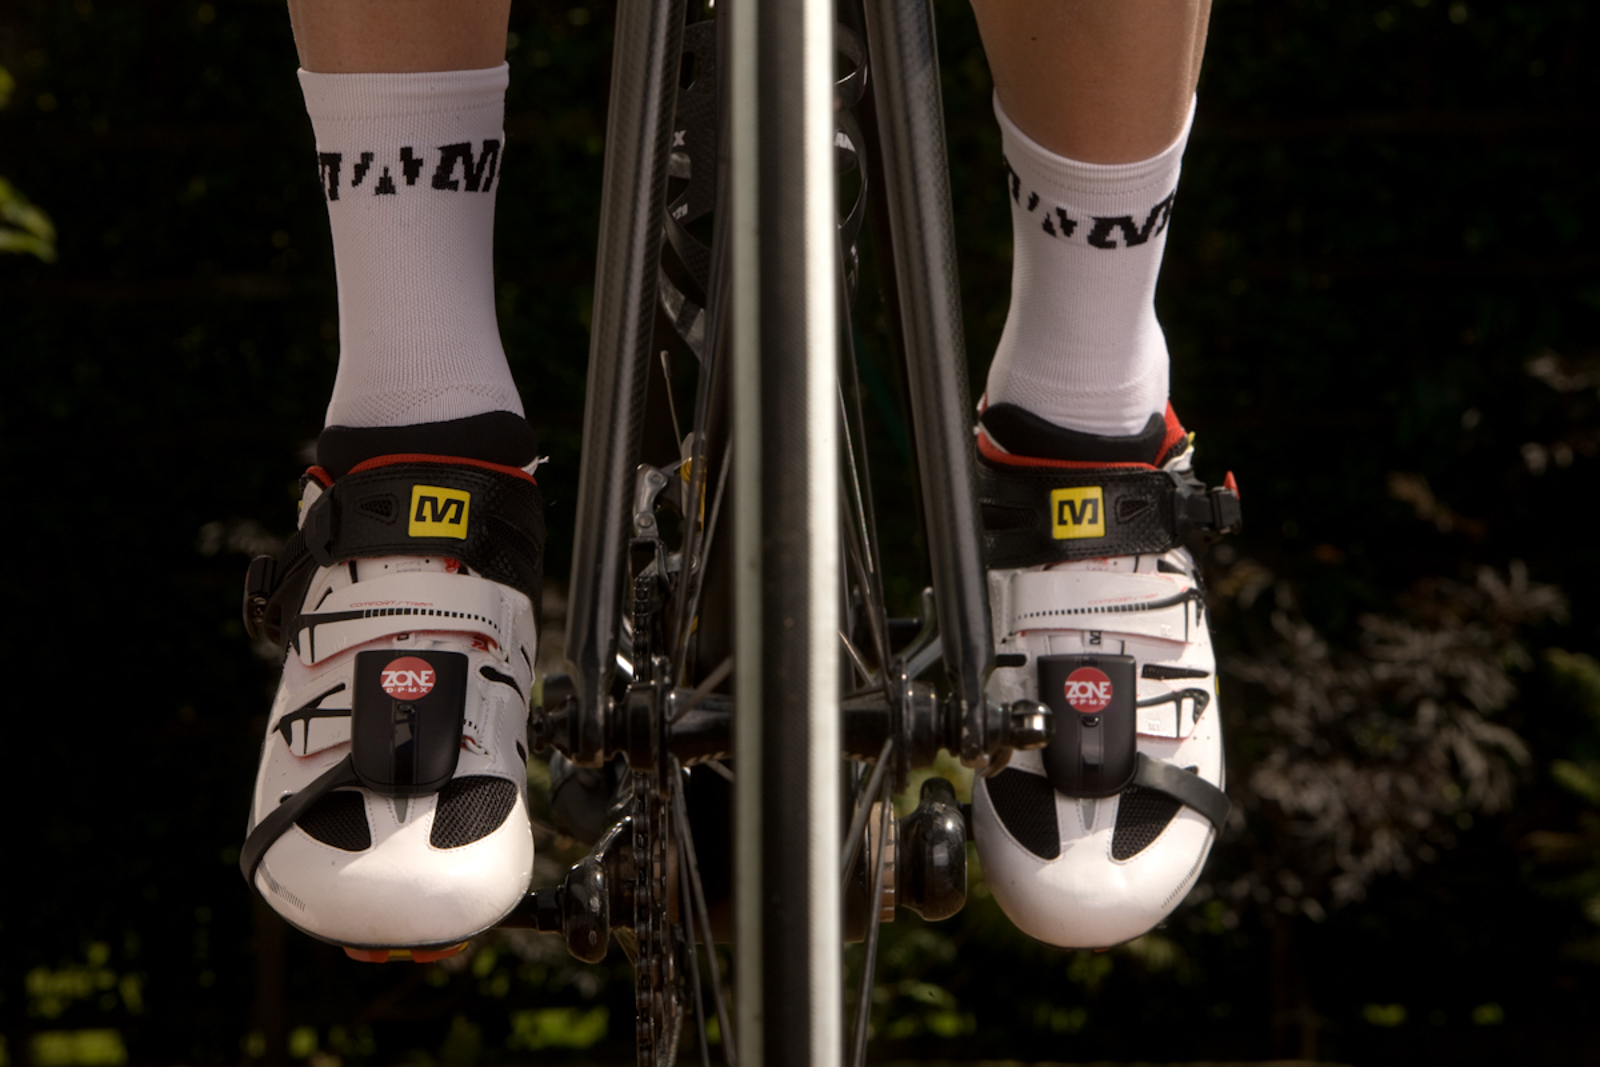 The Brim Brothers Zone DPMX was to offer true dual-sided power measurement in a very handy form factor that traveled with your cycling shoes from bike to bike.